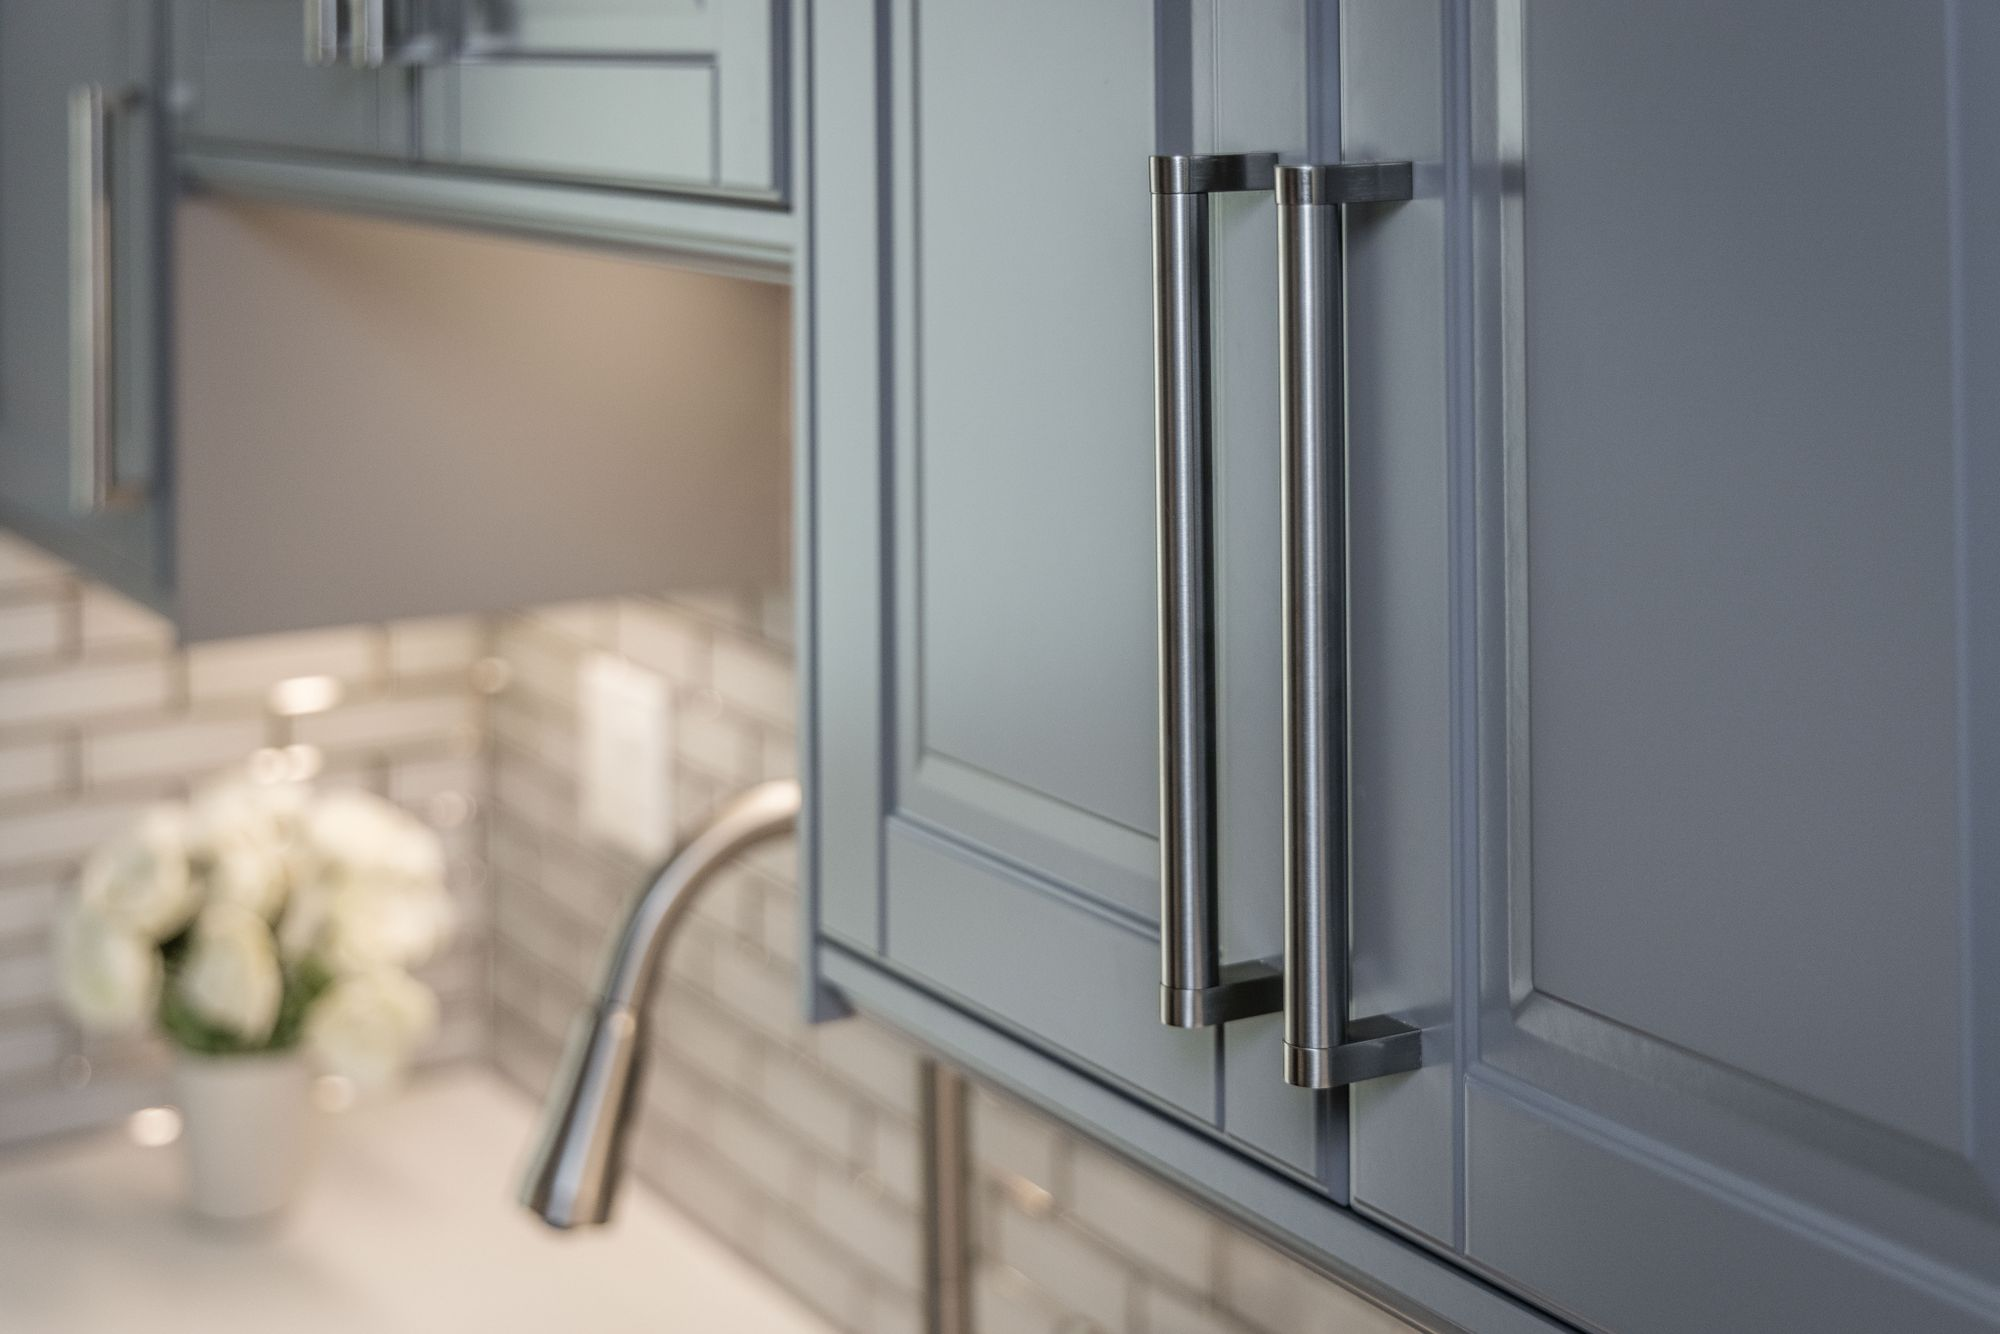 Kitchen cabinet with faucet and sink in background